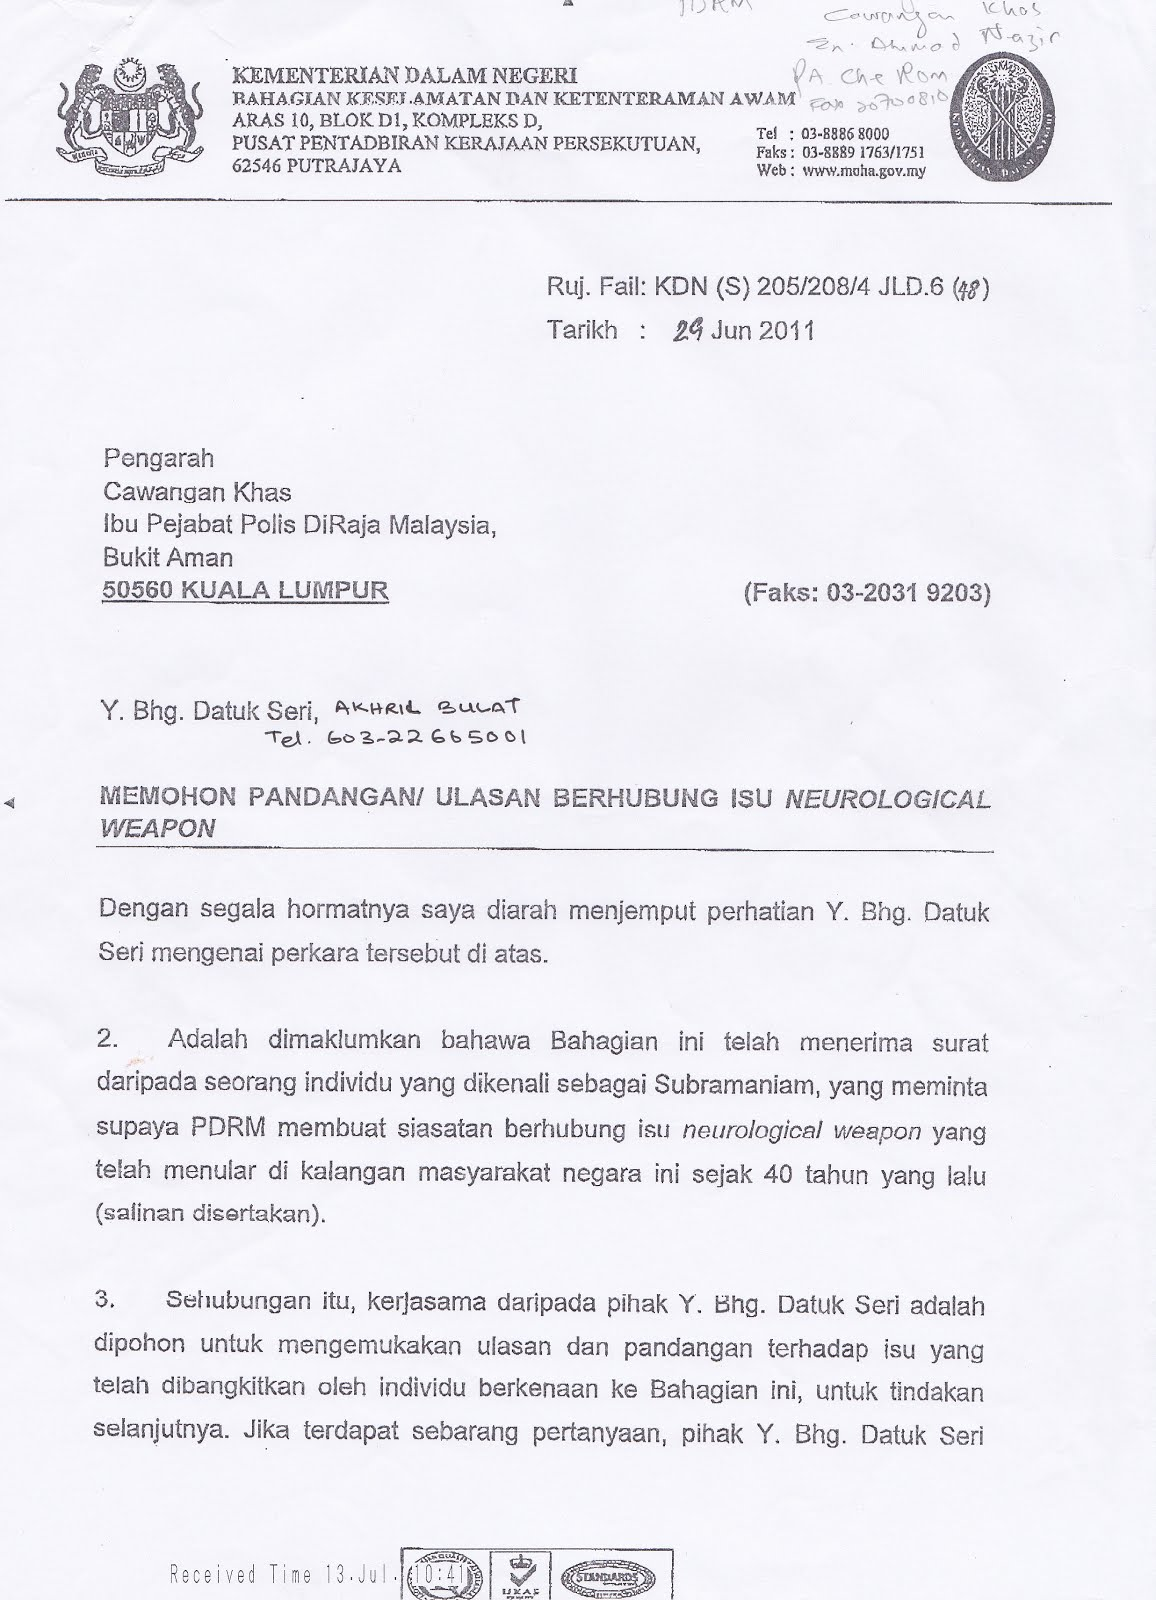 Copy of letter from Malaysian PM's ( KDN-Security and Public Order Div) to Police HQ Kuala Lumpur